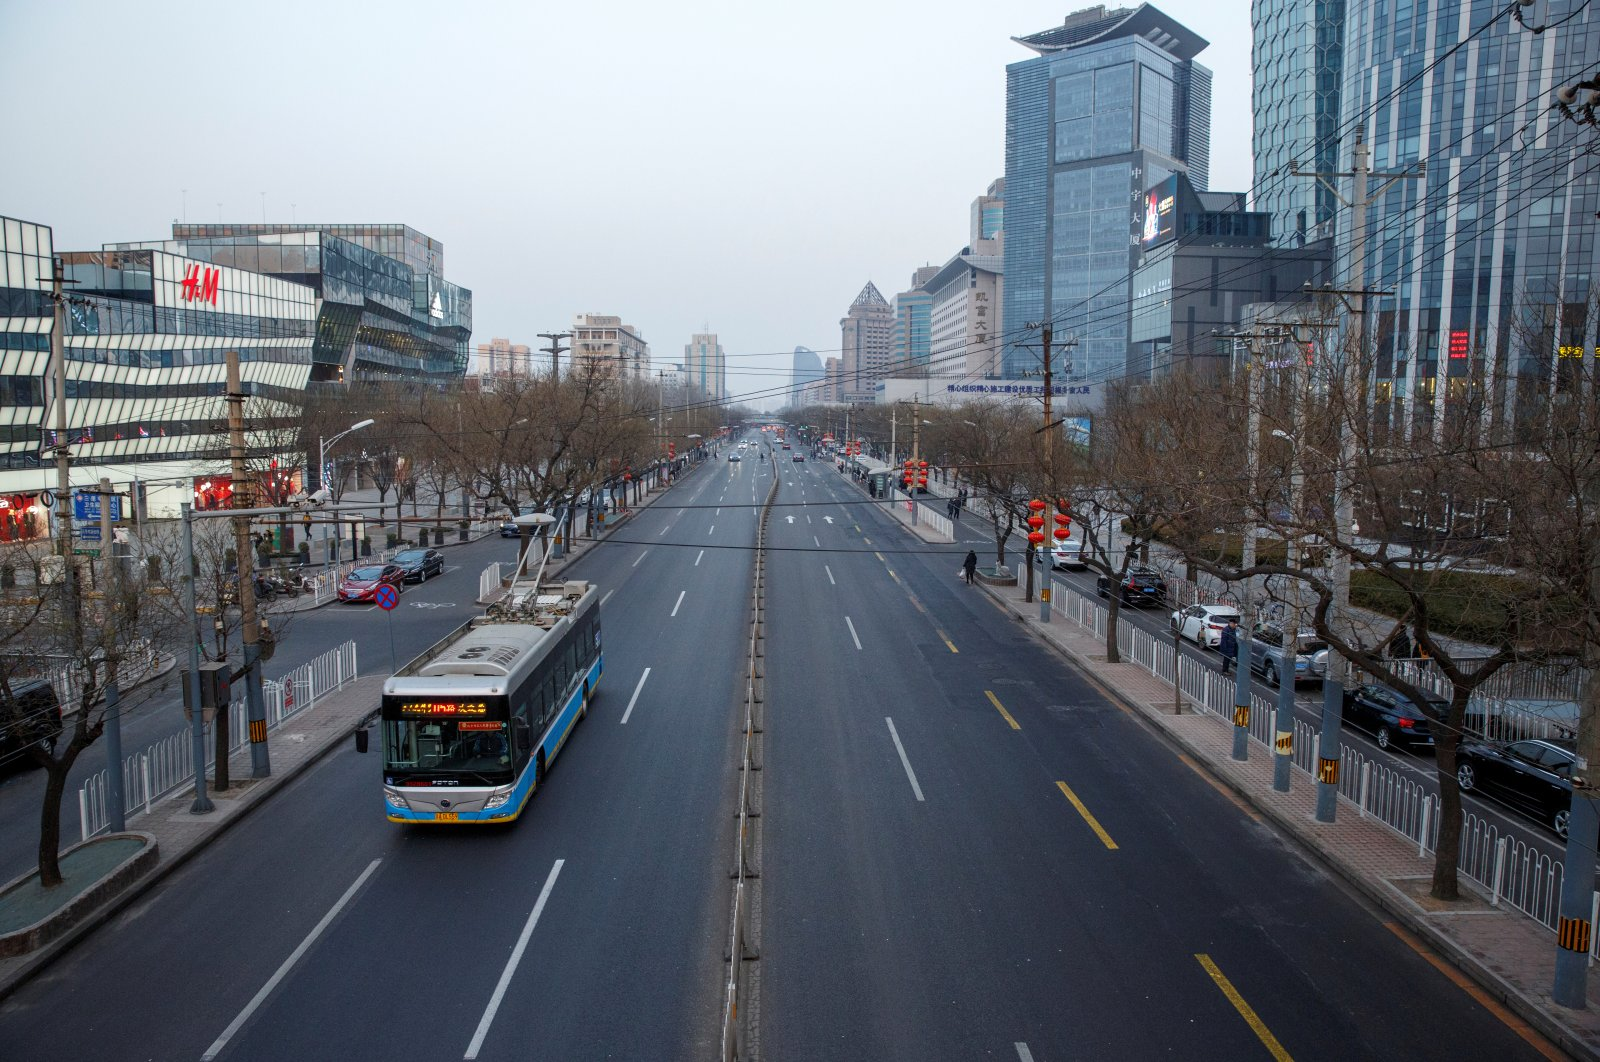 An electric bus goes on a usually busy main road in the Sanlitun shopping district in Beijing, China, Feb. 4, 2019. (Reuters Photo)